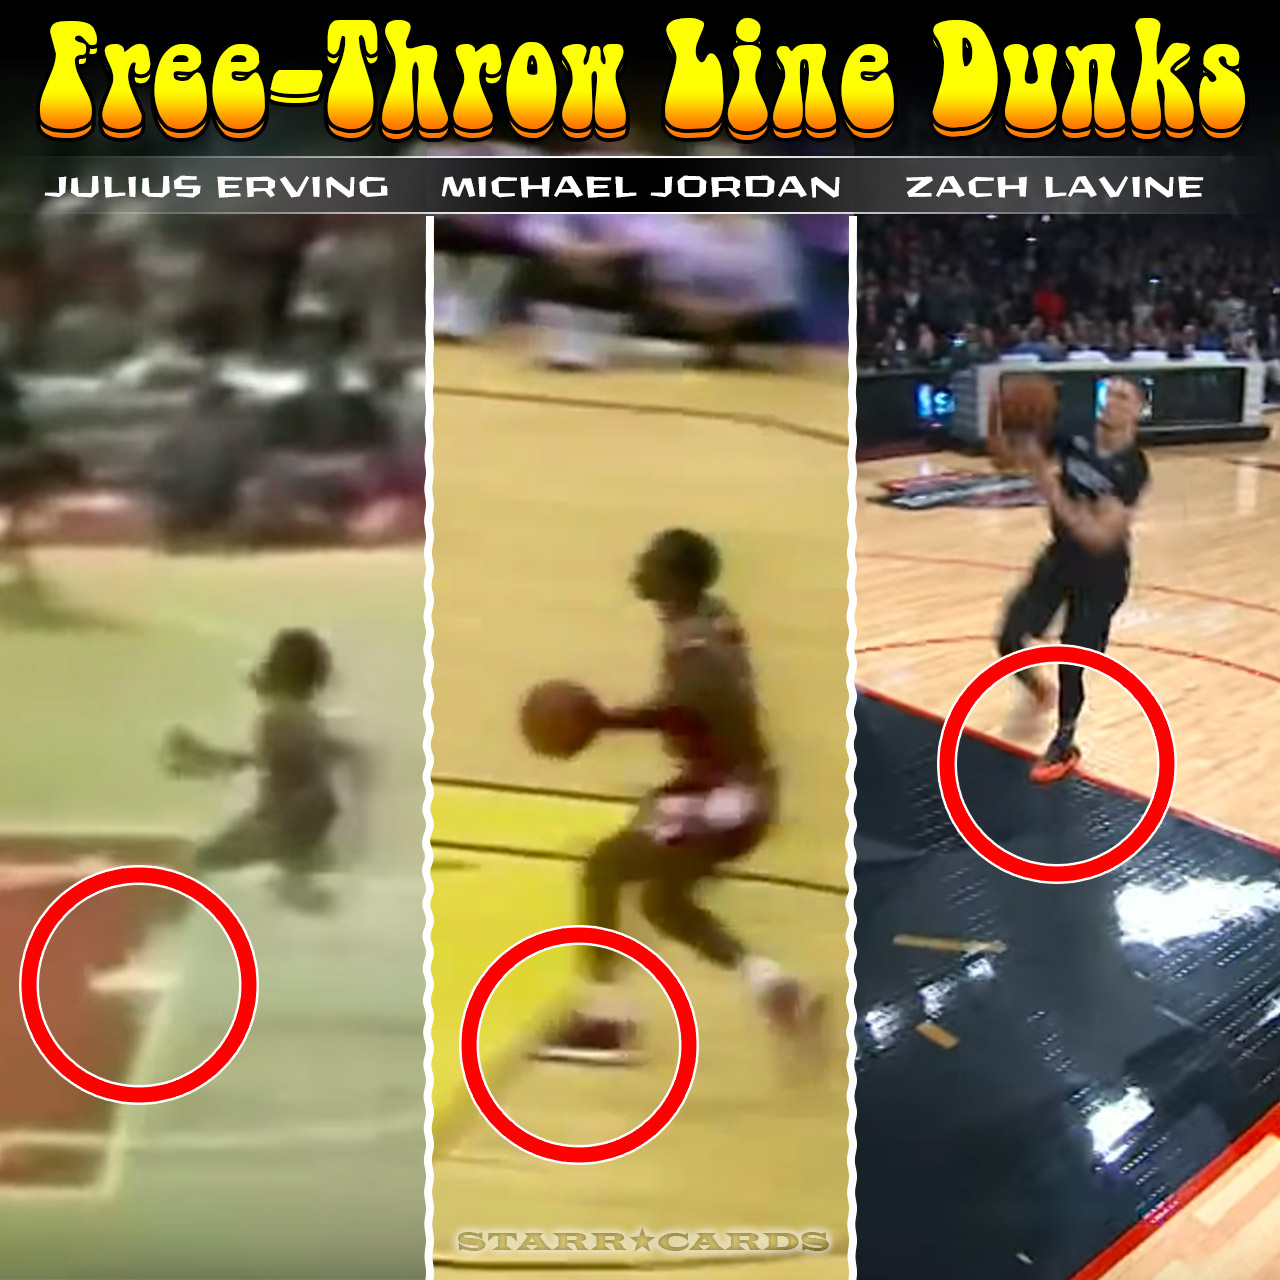 designer fashion 81624 3af62 Free-throw line dunks with Dr. J, Michael Jordan, Zach LaVine and more